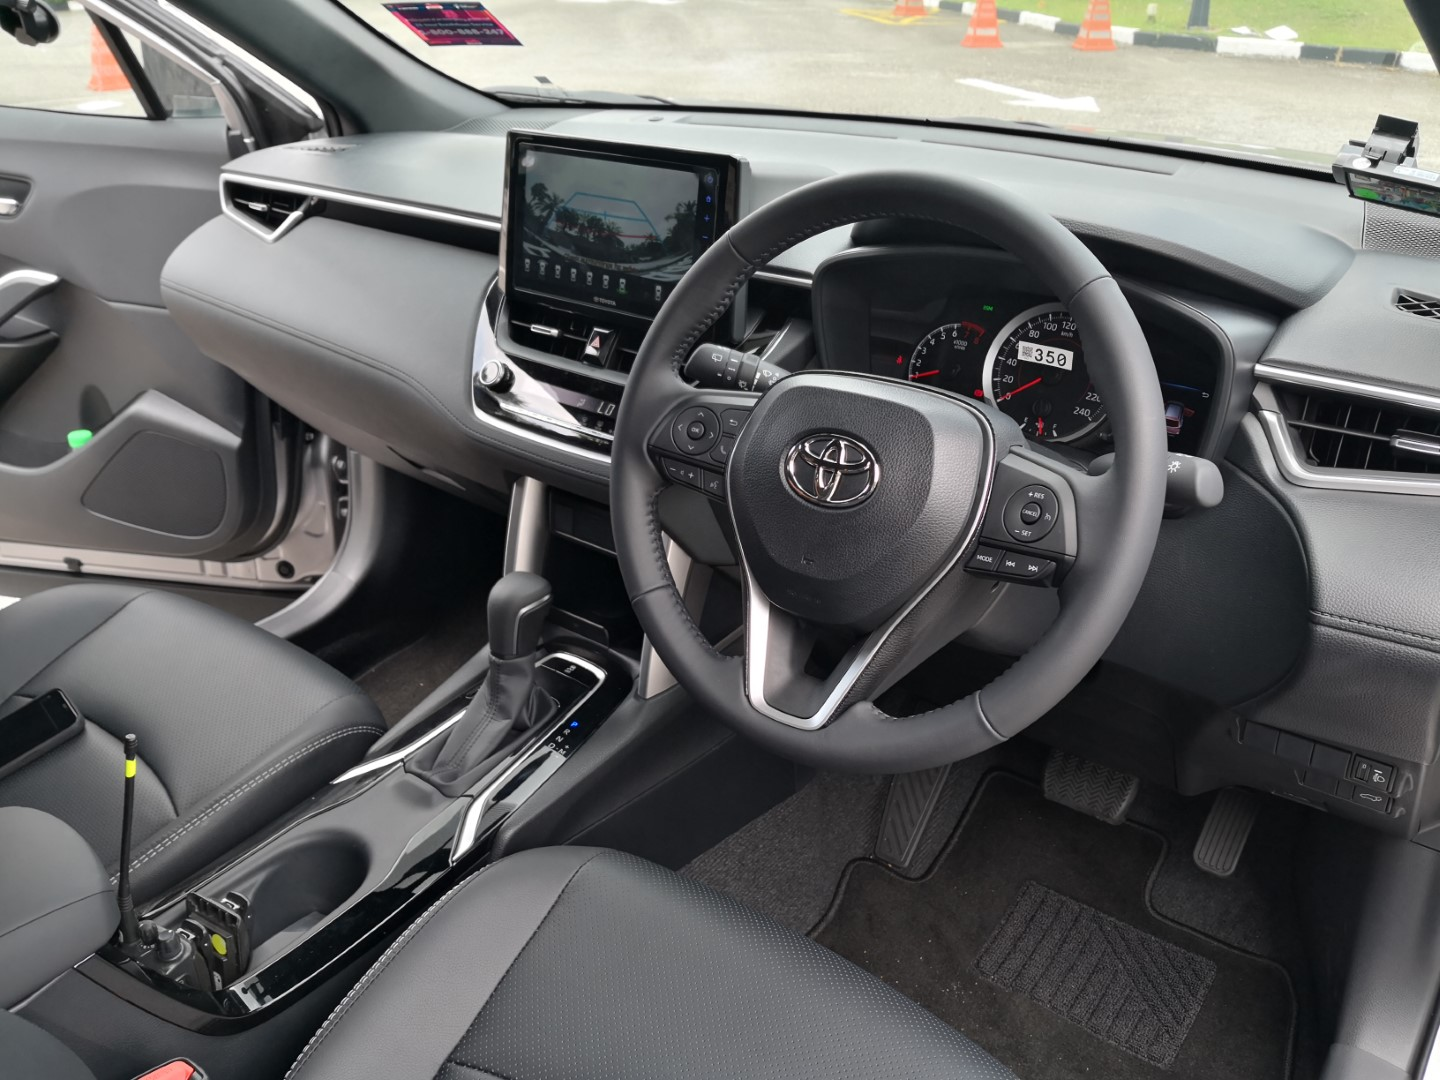 Toyota Corolla Cross Interior